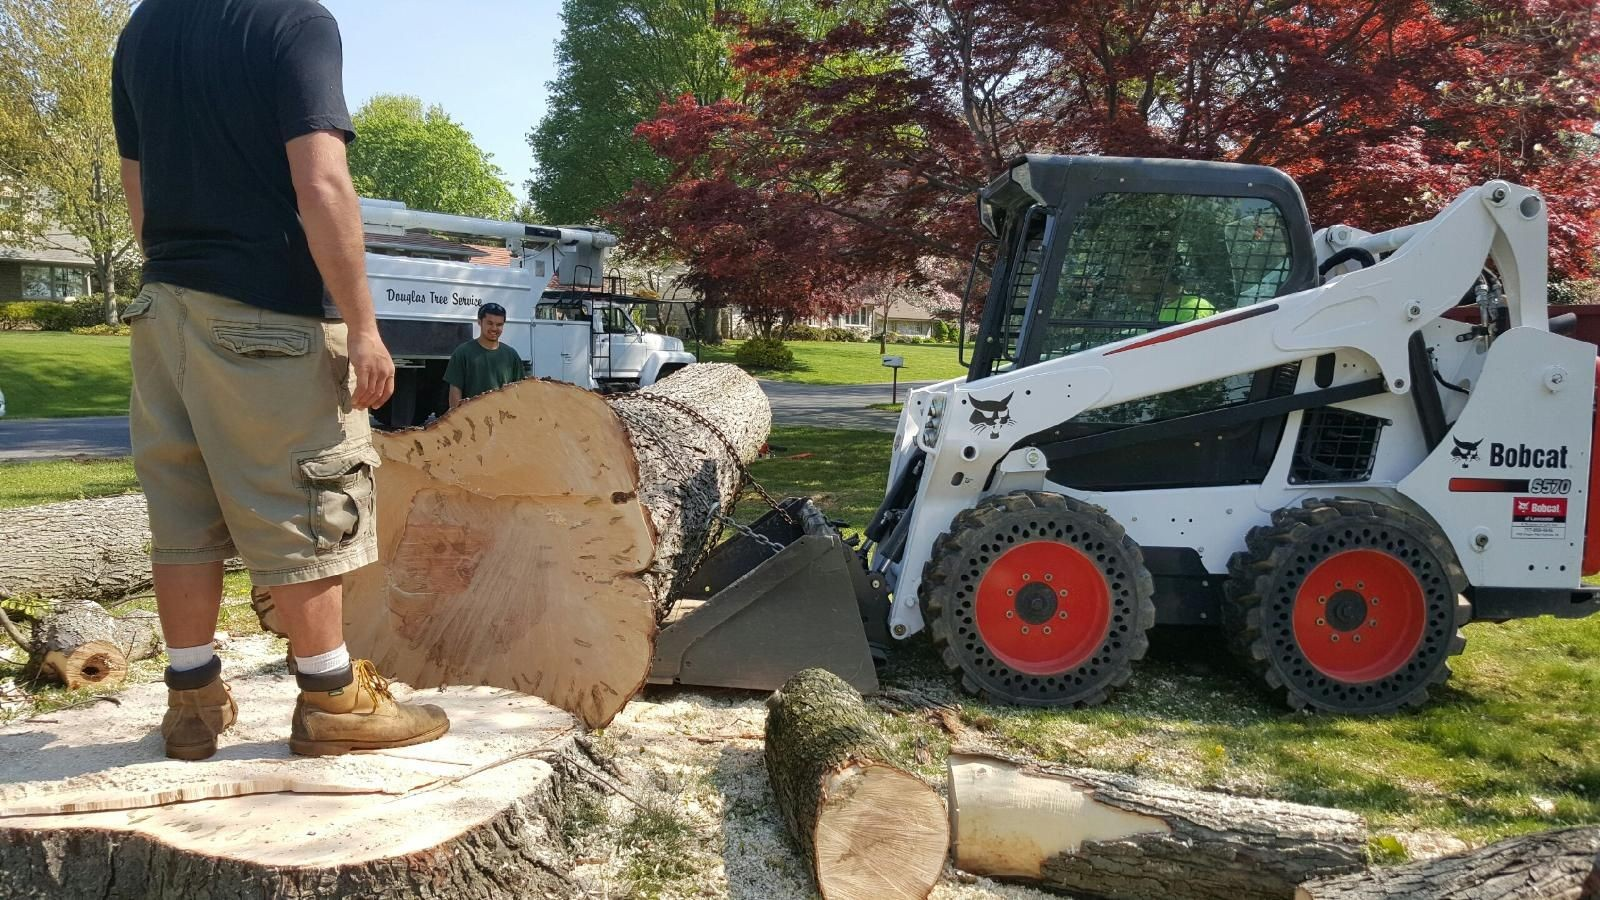 Enterprise-Henderson Tree Trimming and Stump Grinding Services-We Offer Tree Trimming Services, Tree Removal, Tree Pruning, Tree Cutting, Residential and Commercial Tree Trimming Services, Storm Damage, Emergency Tree Removal, Land Clearing, Tree Companies, Tree Care Service, Stump Grinding, and we're the Best Tree Trimming Company Near You Guaranteed!